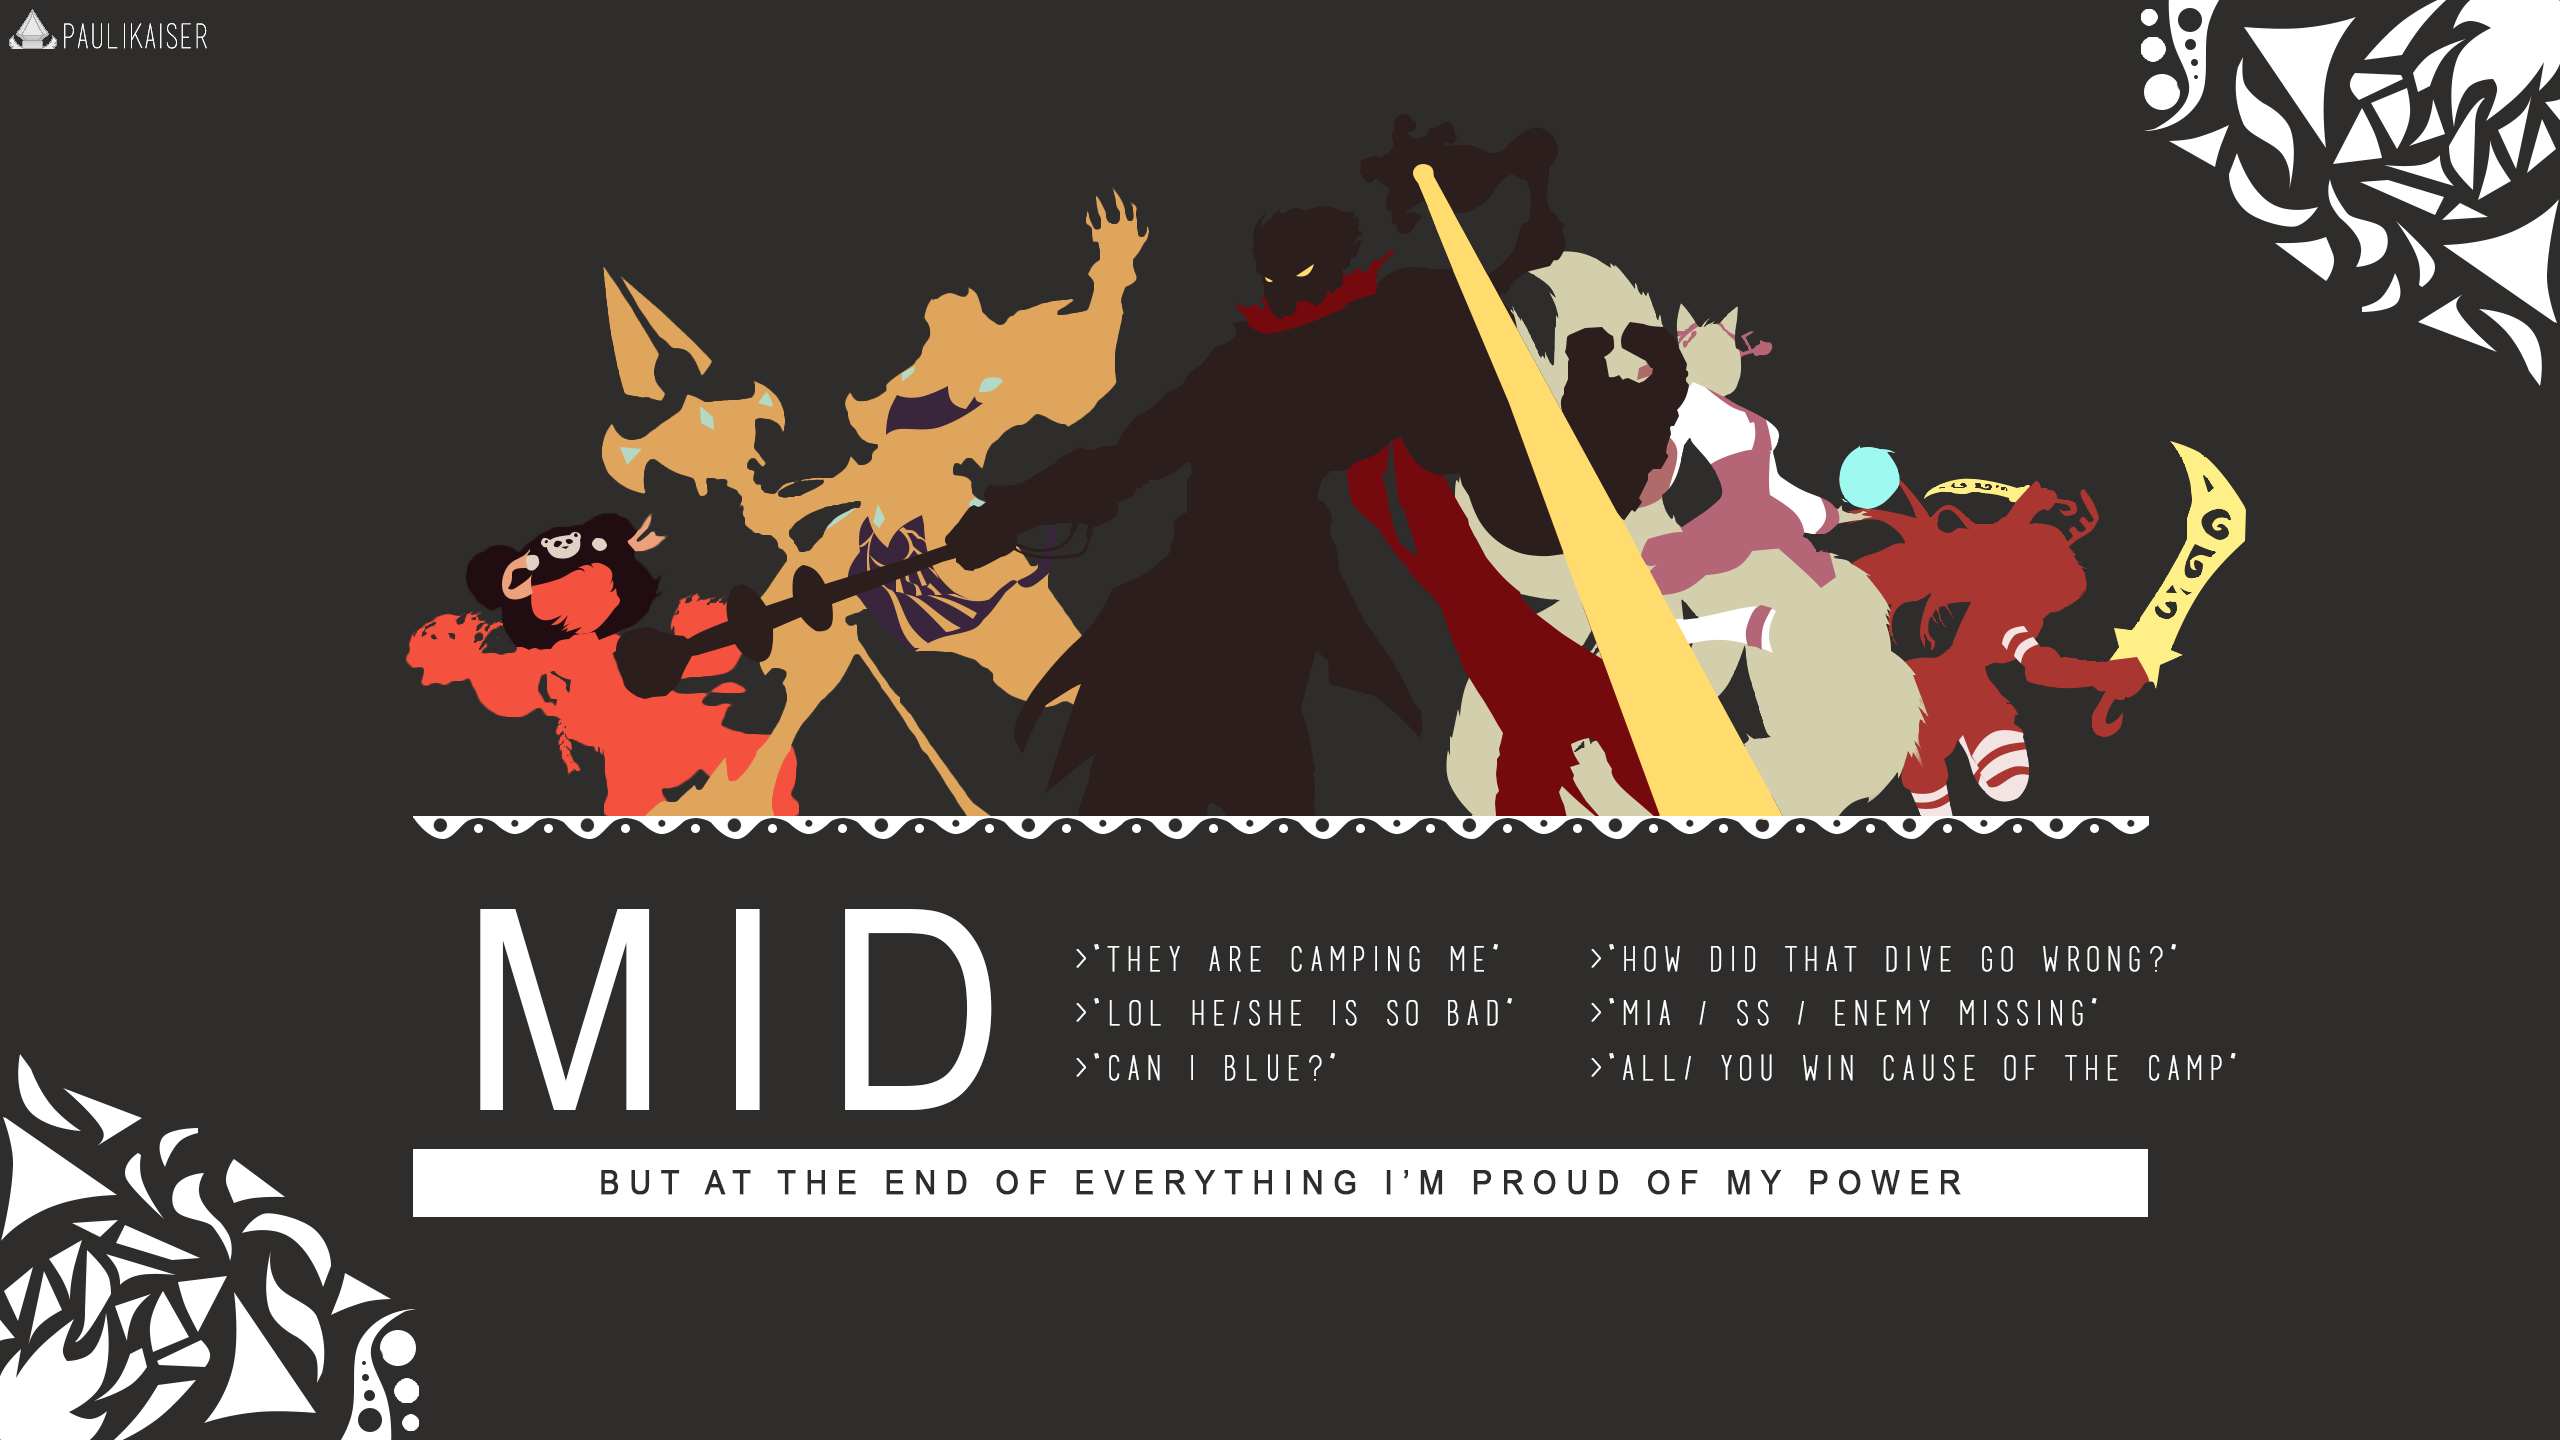 mid_wallpaper_by_paulikaiser-d96qyy5 – How2Play